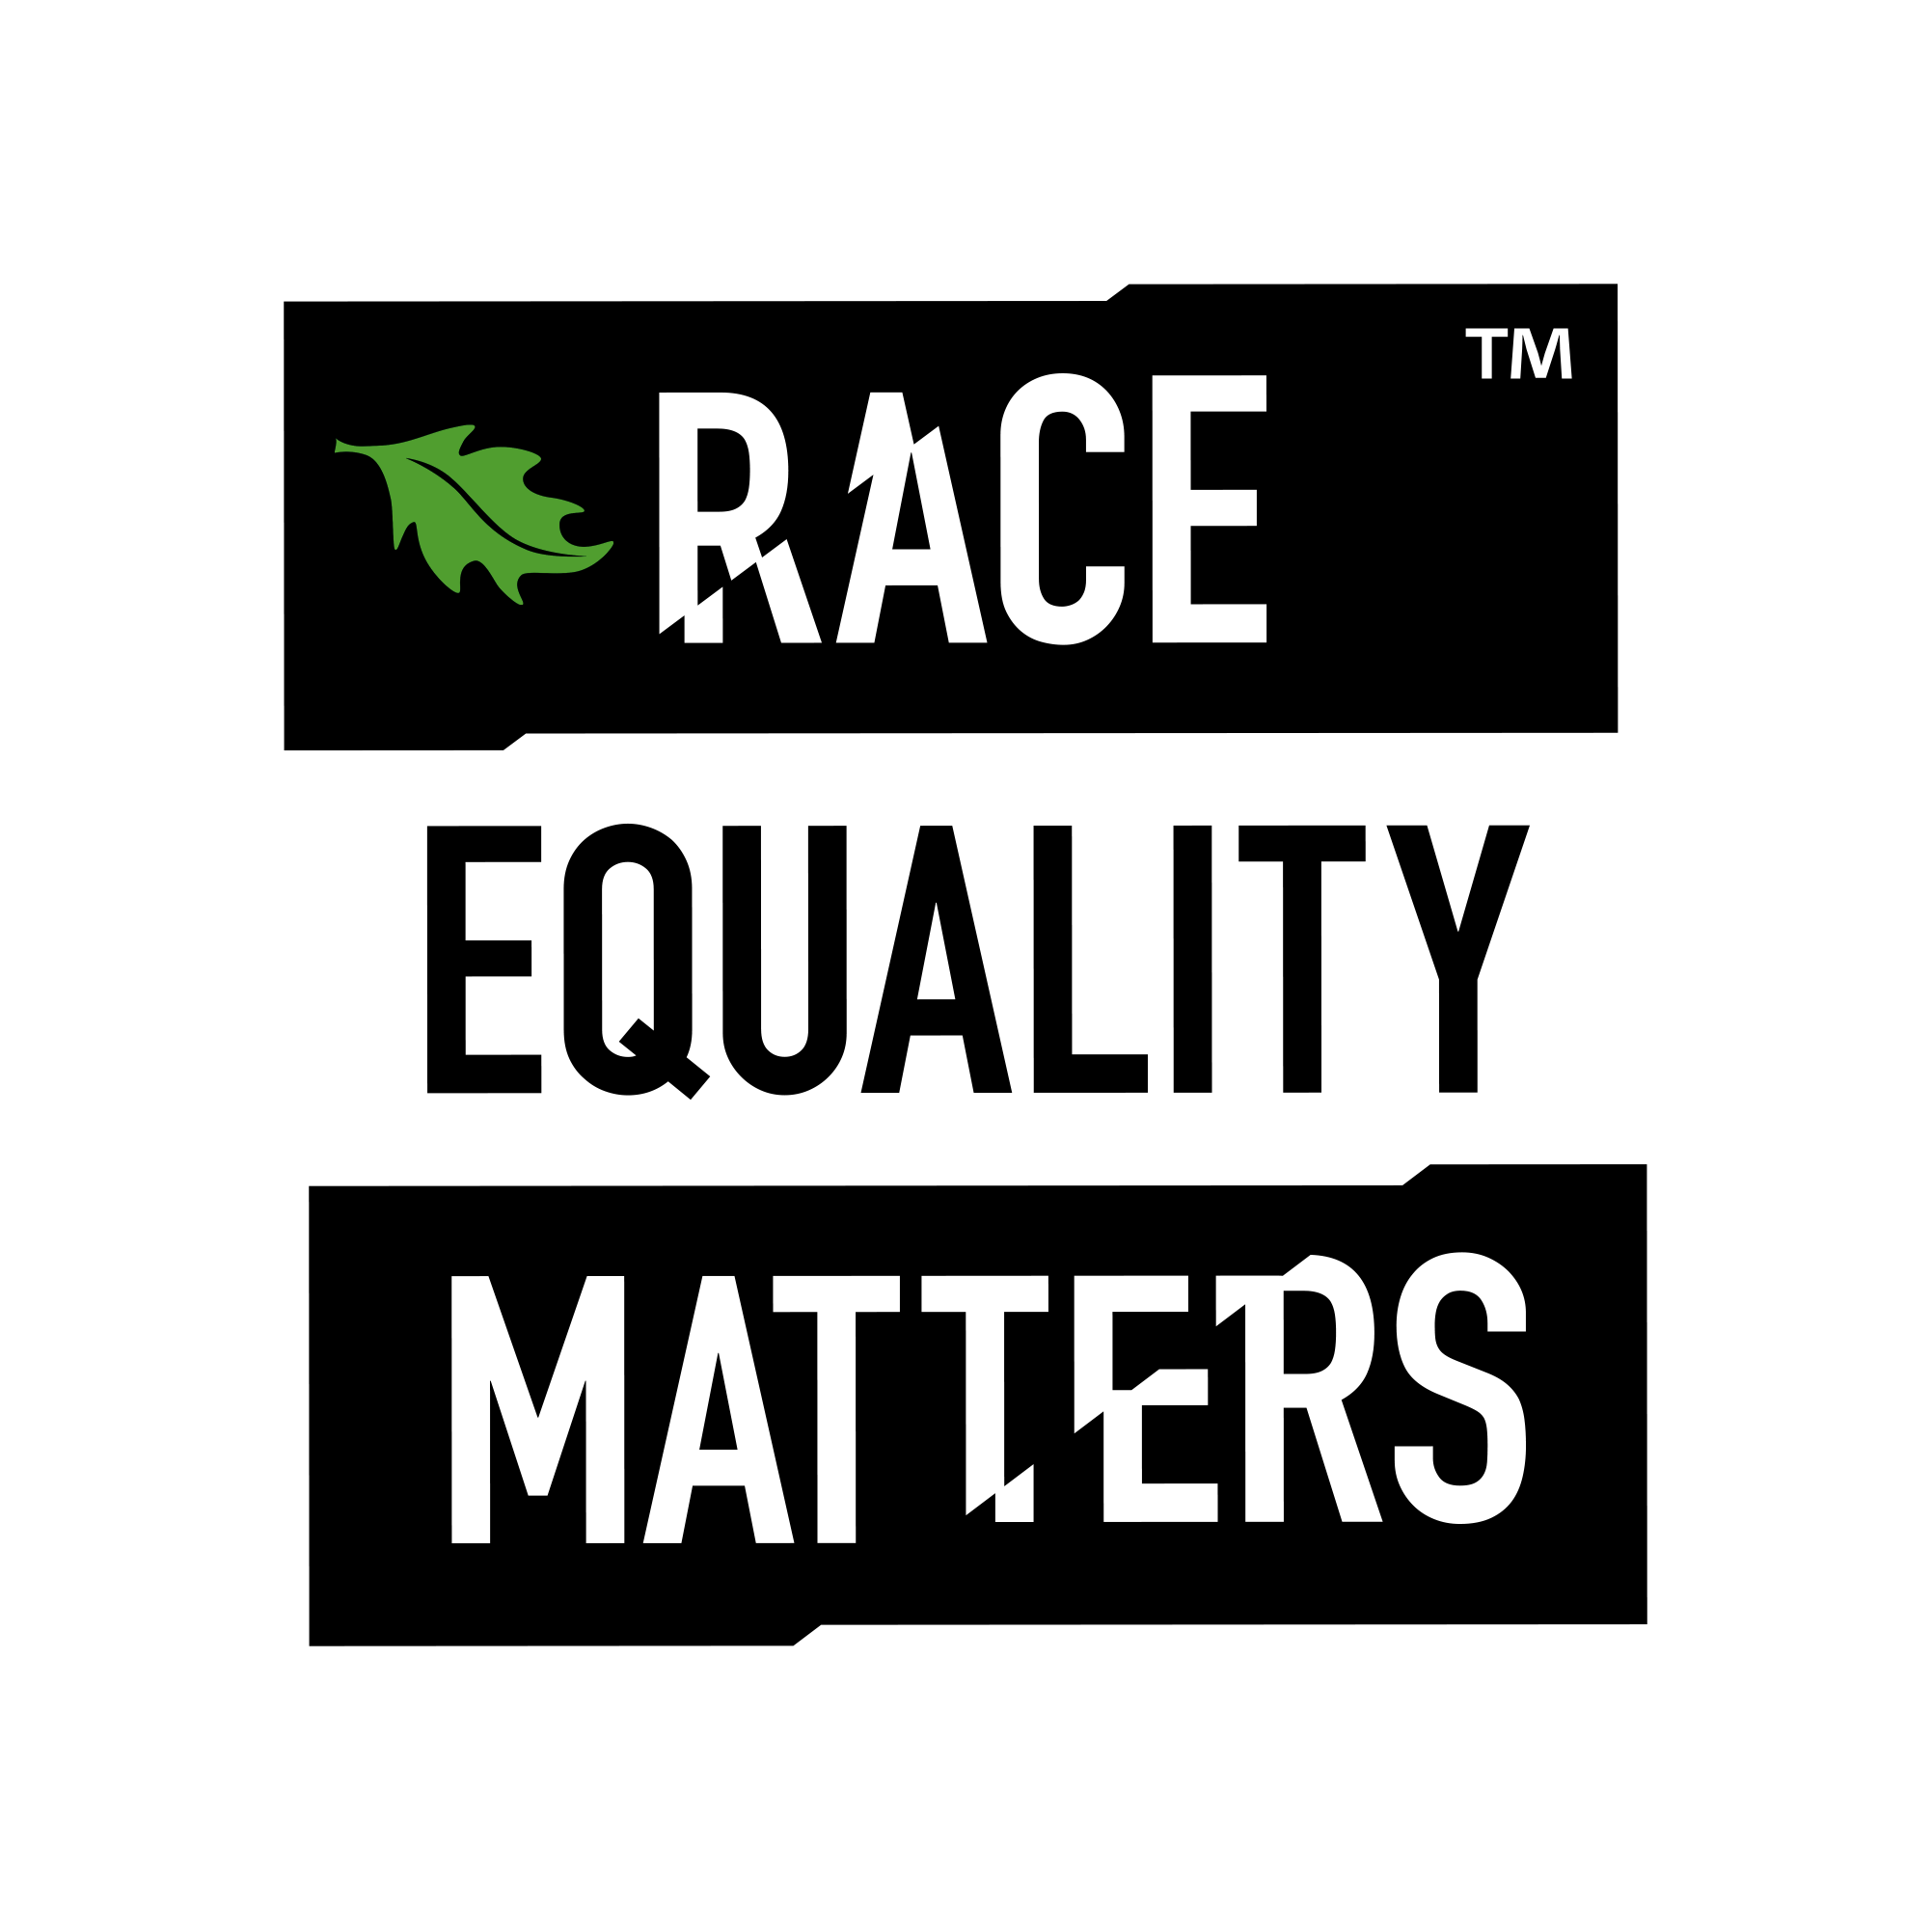 Race Equality Matters /